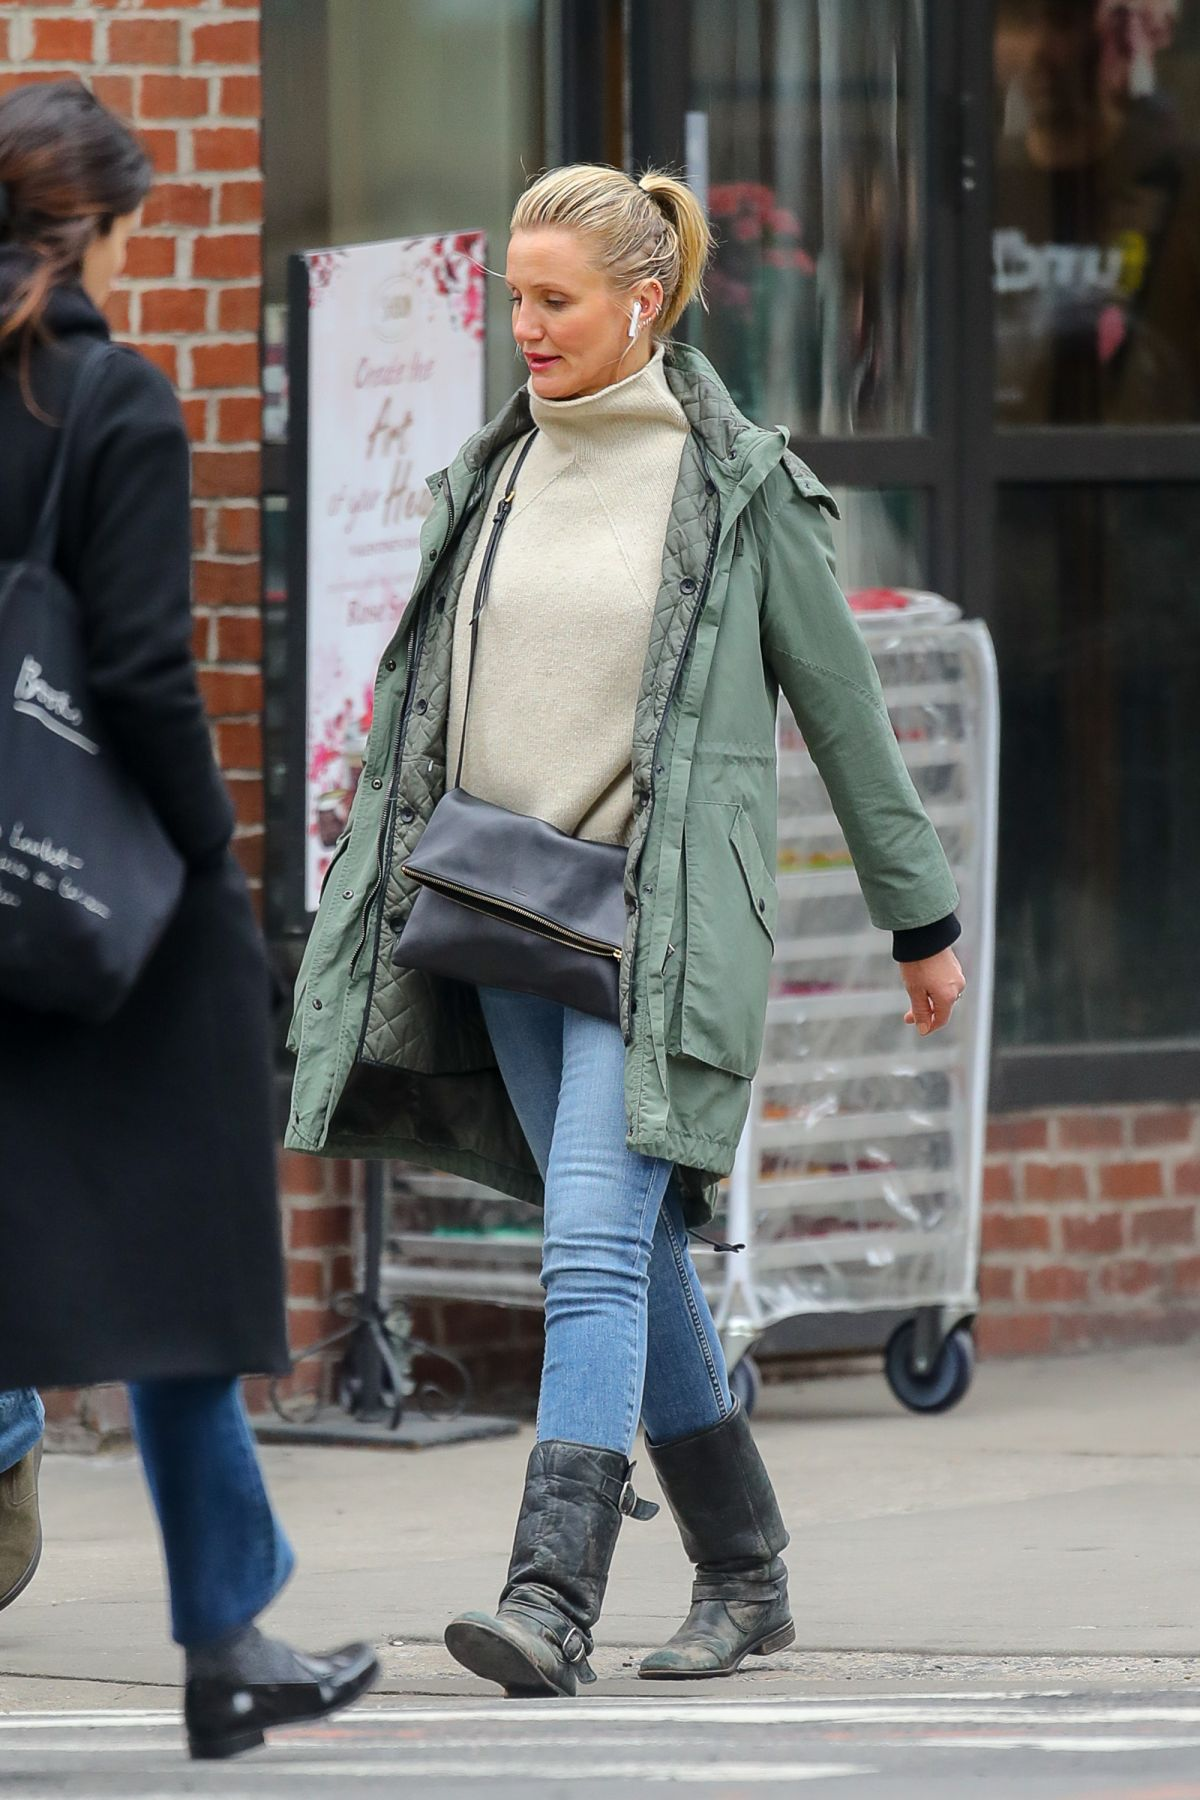 CAMERON DIAZ Out and About in New York 02/15/2019 – HawtCelebs